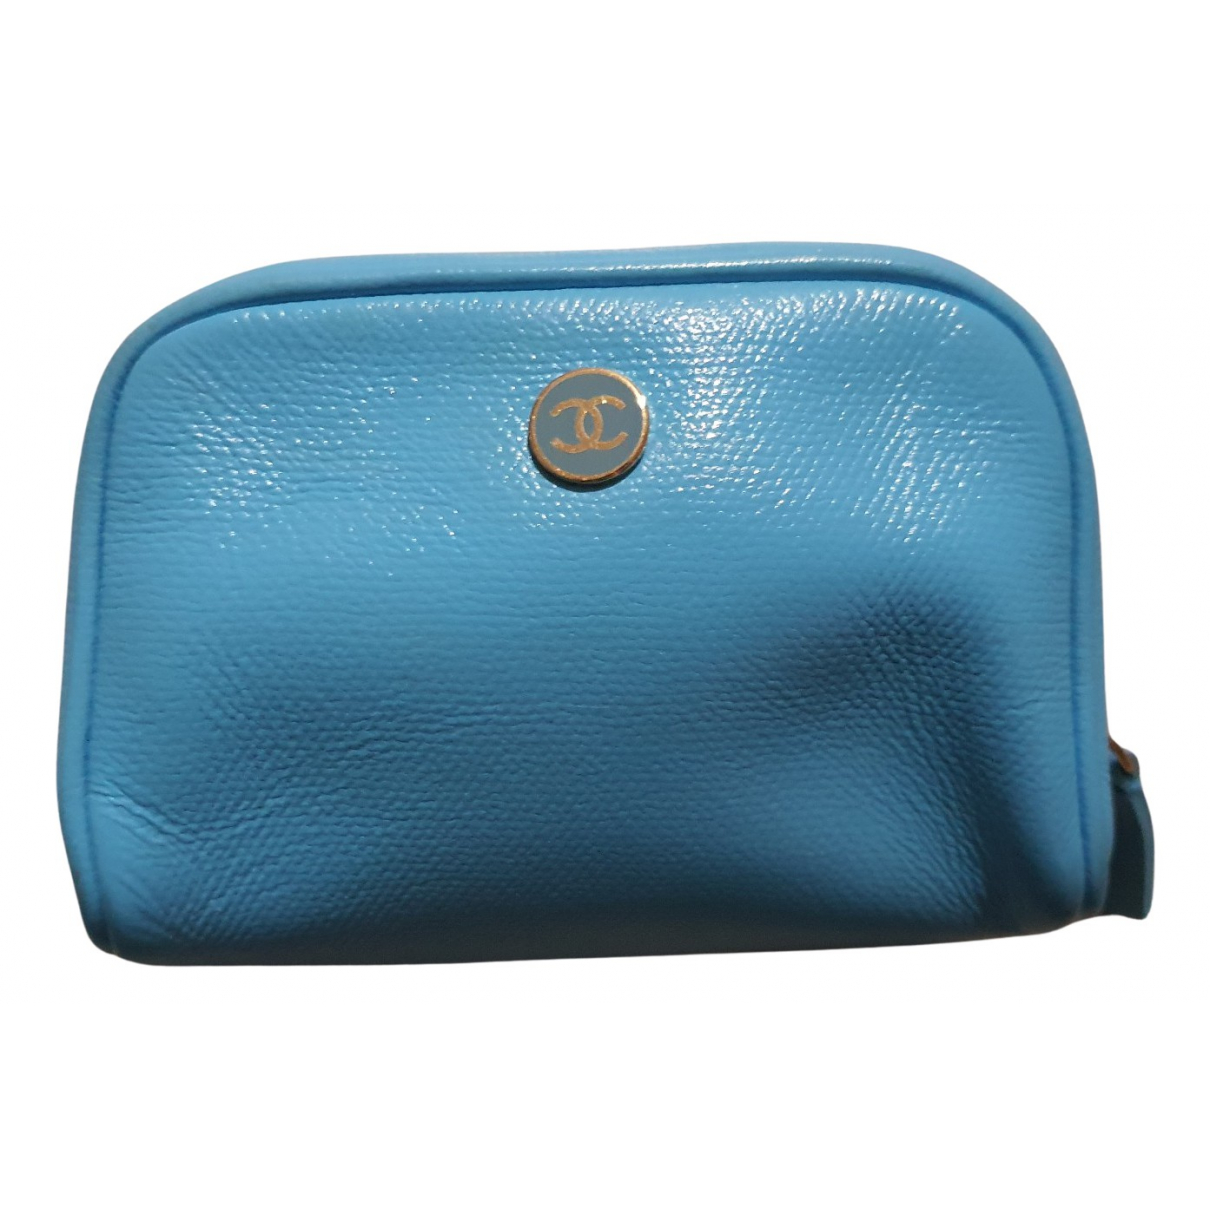 Chanel N Blue Leather Purses, wallet & cases for Women N